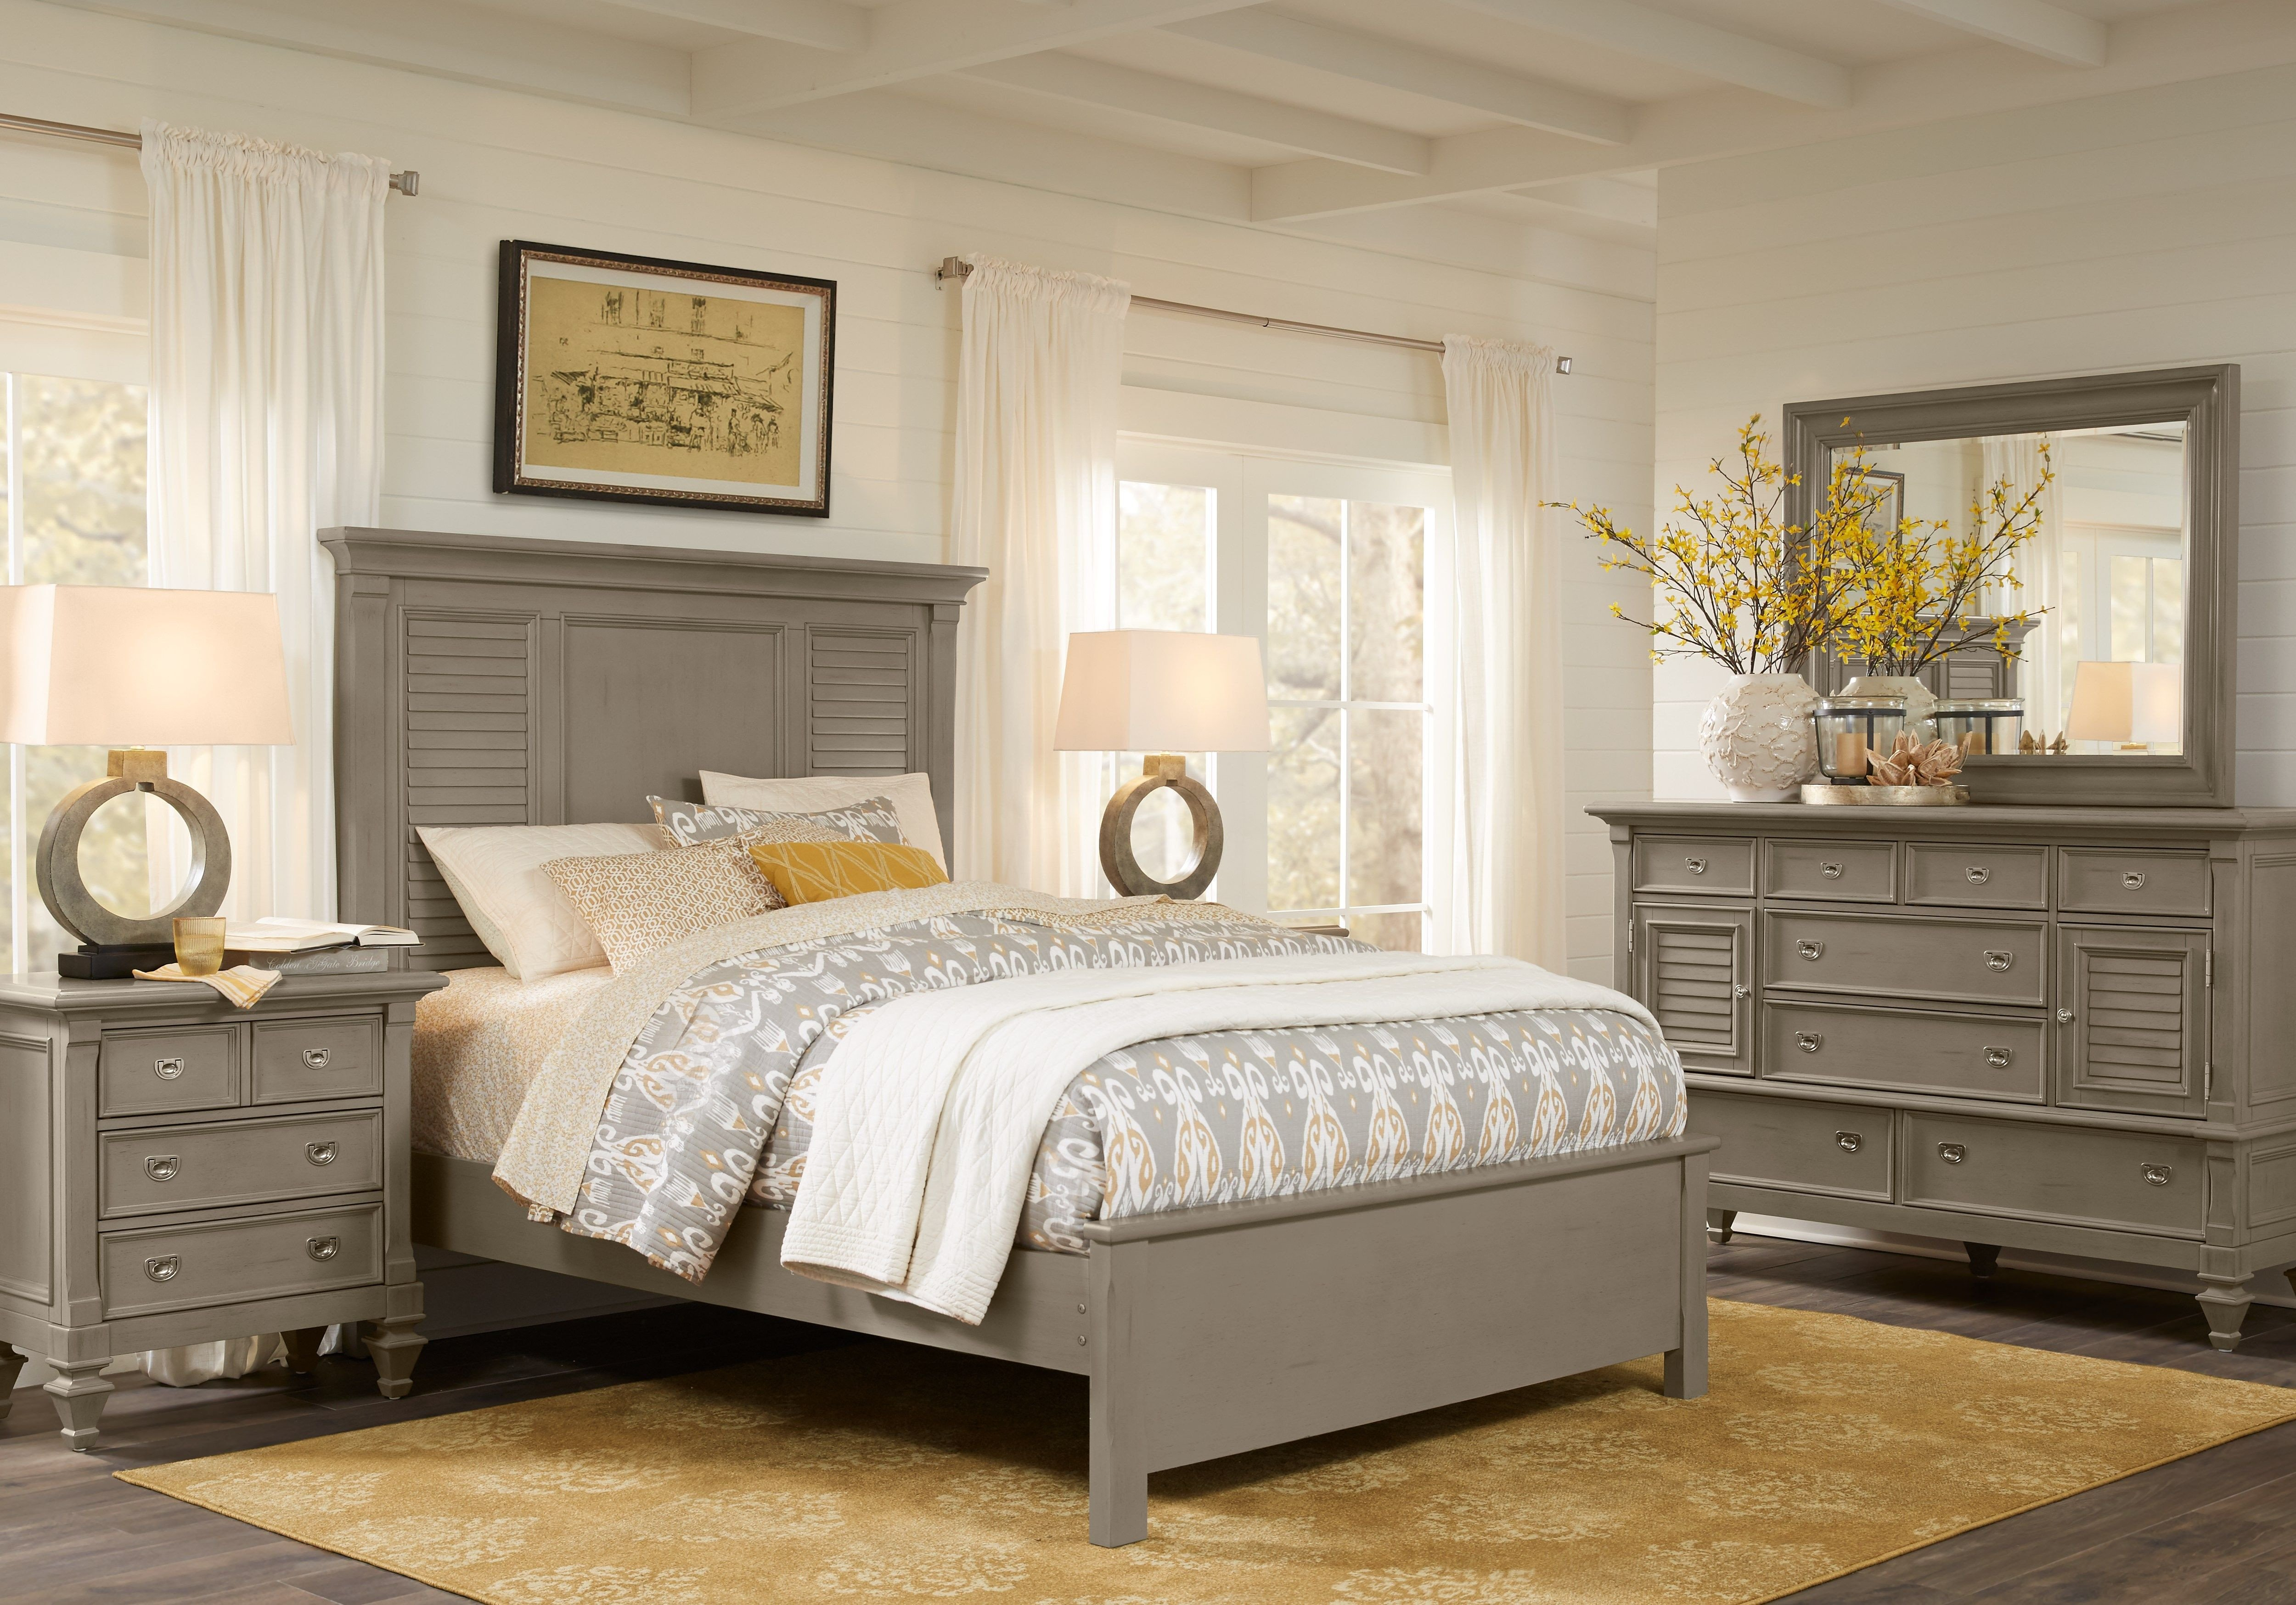 King Size Bedroom Suit Awesome Belmar Gray 5 Pc King Bedroom Decor In 2019